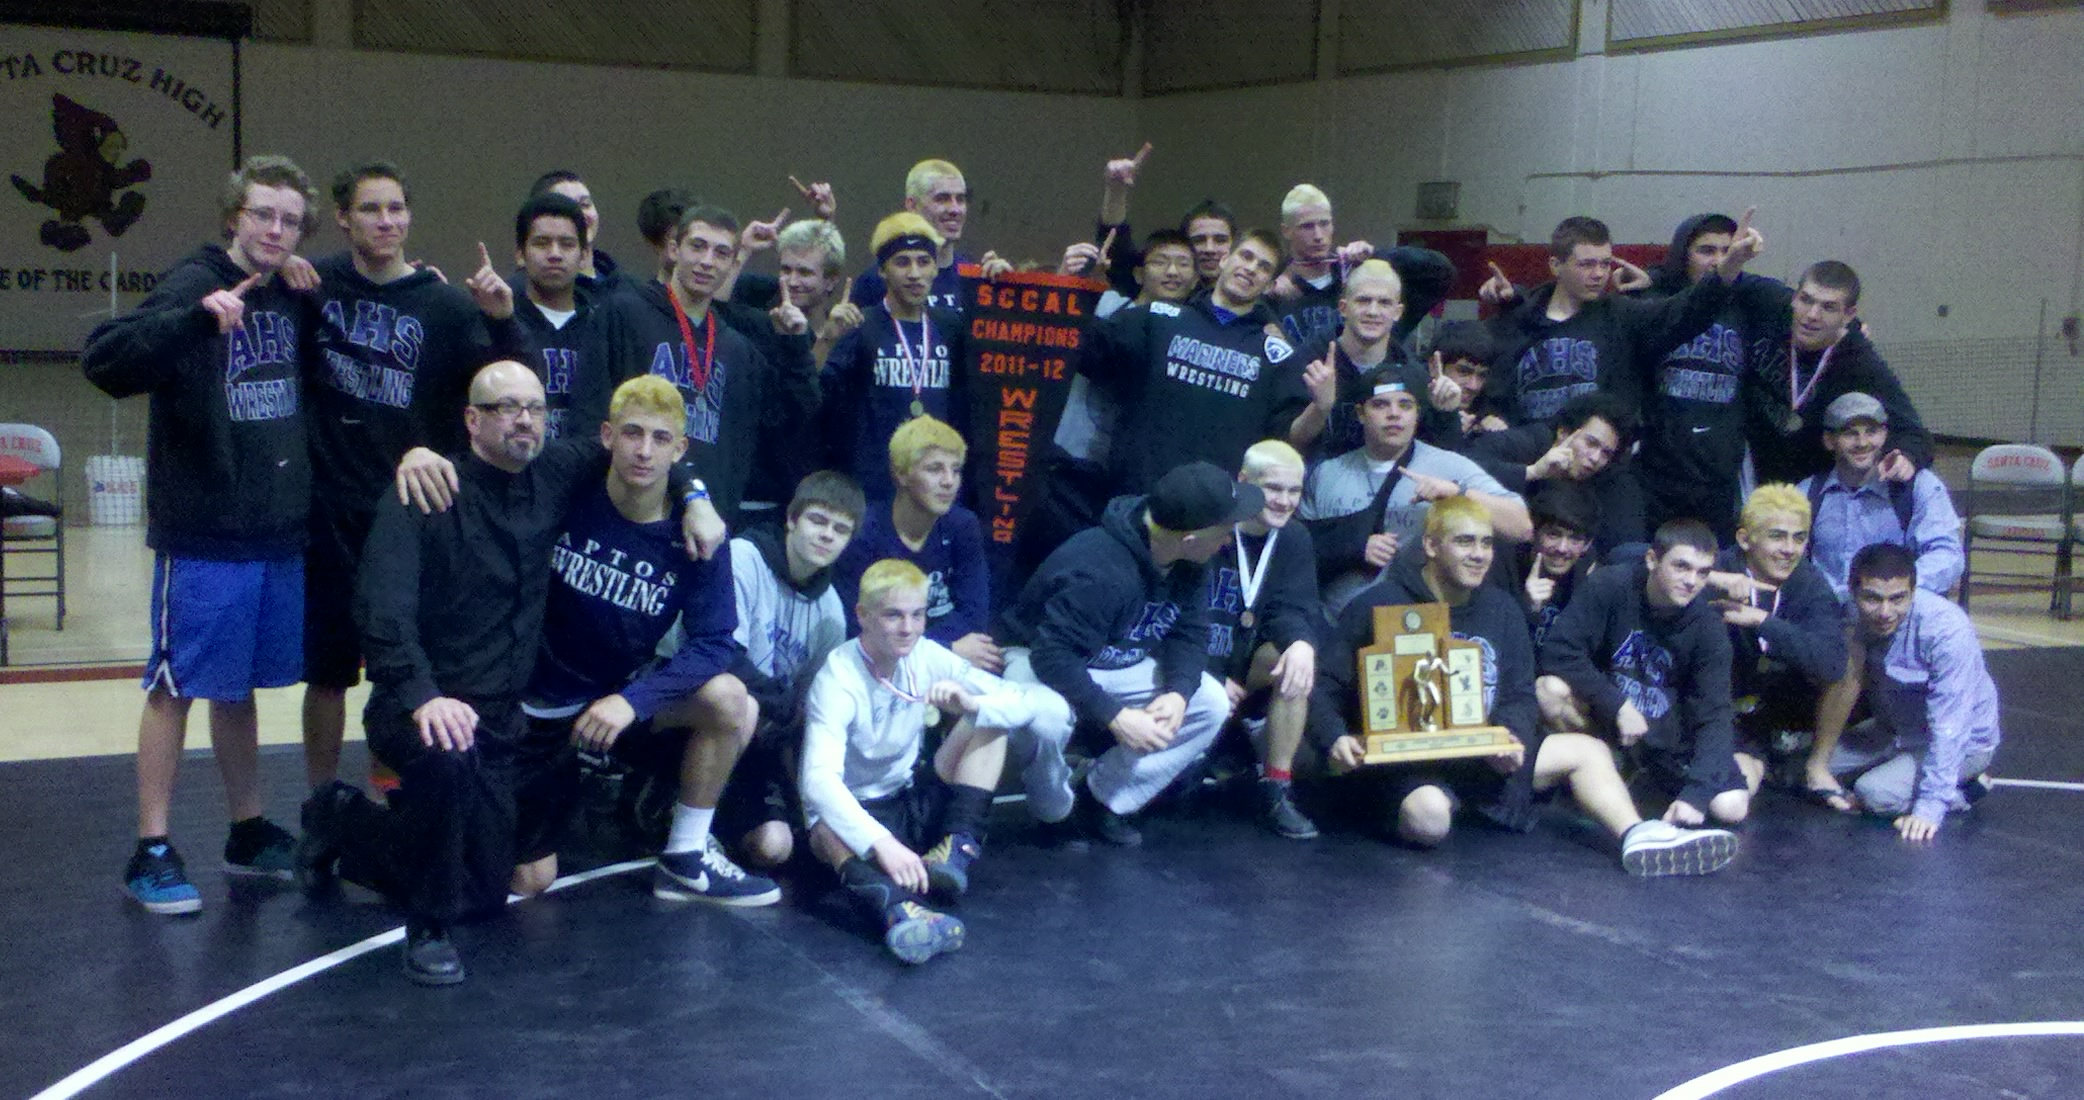 SCCAL CHamps '12